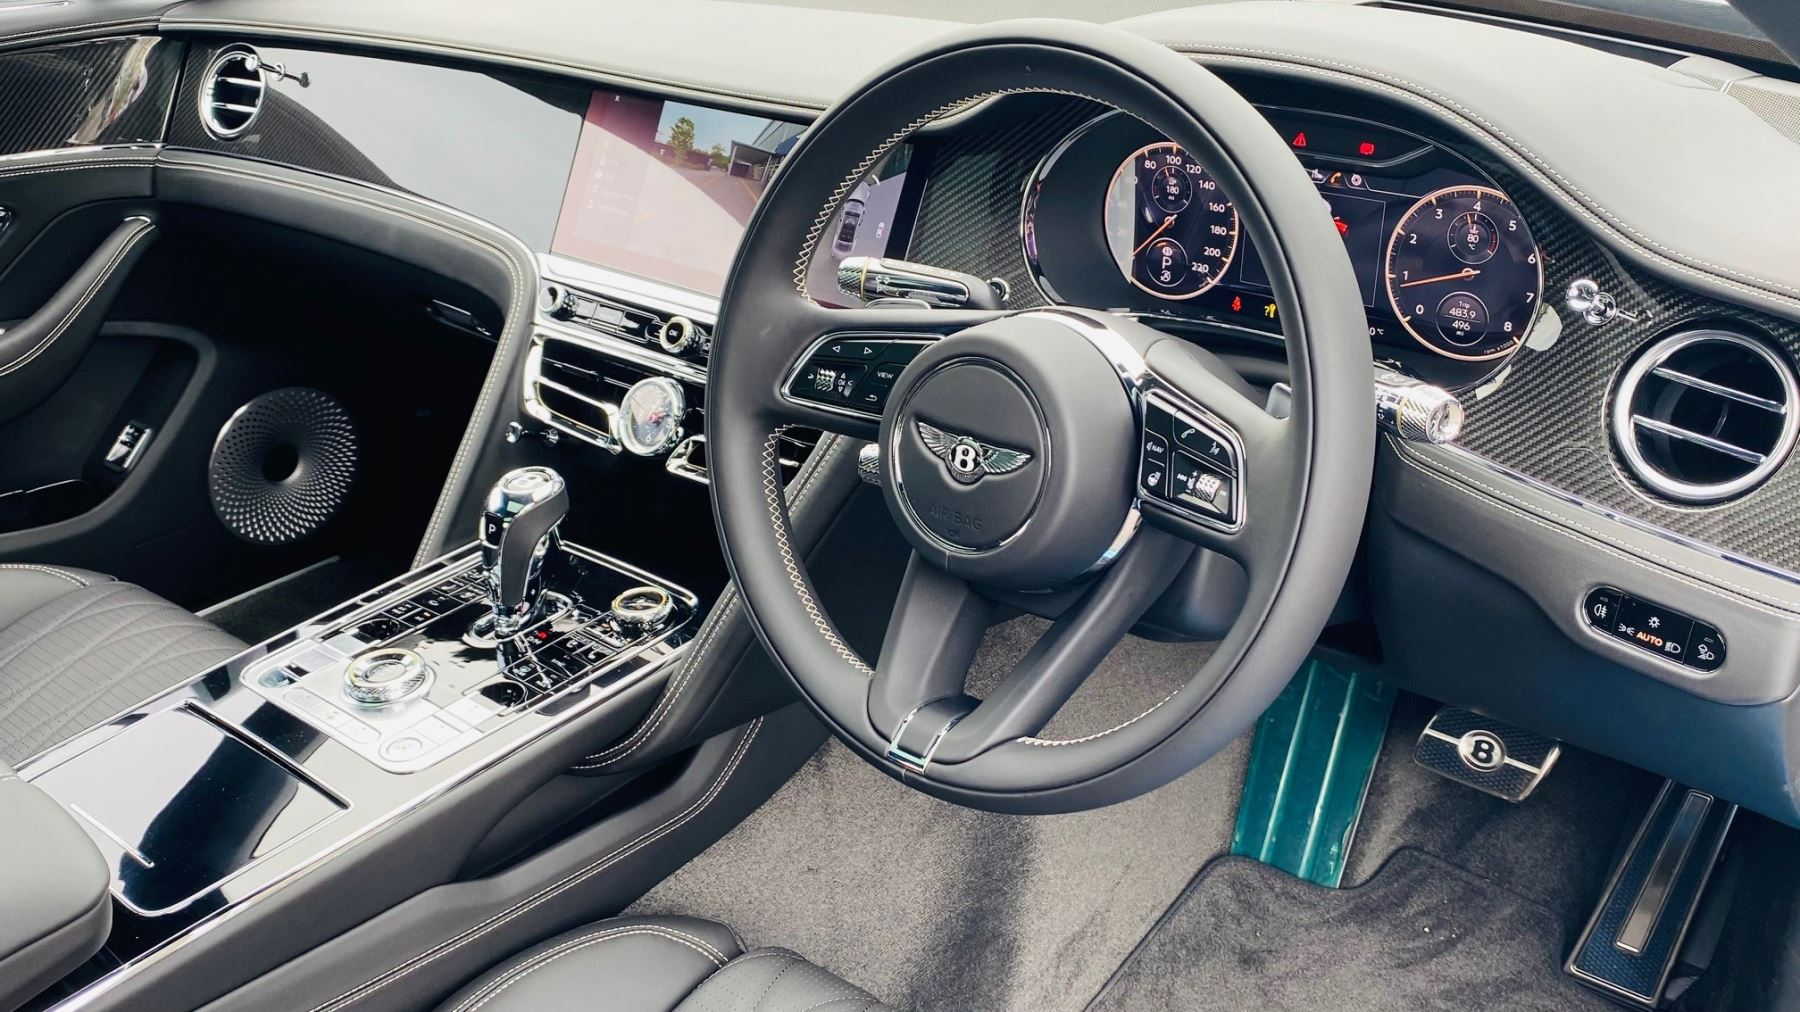 Bentley Flying Spur 4.0 V8 Mulliner Driving Spec 4dr Auto - Touring and City Specification image 12